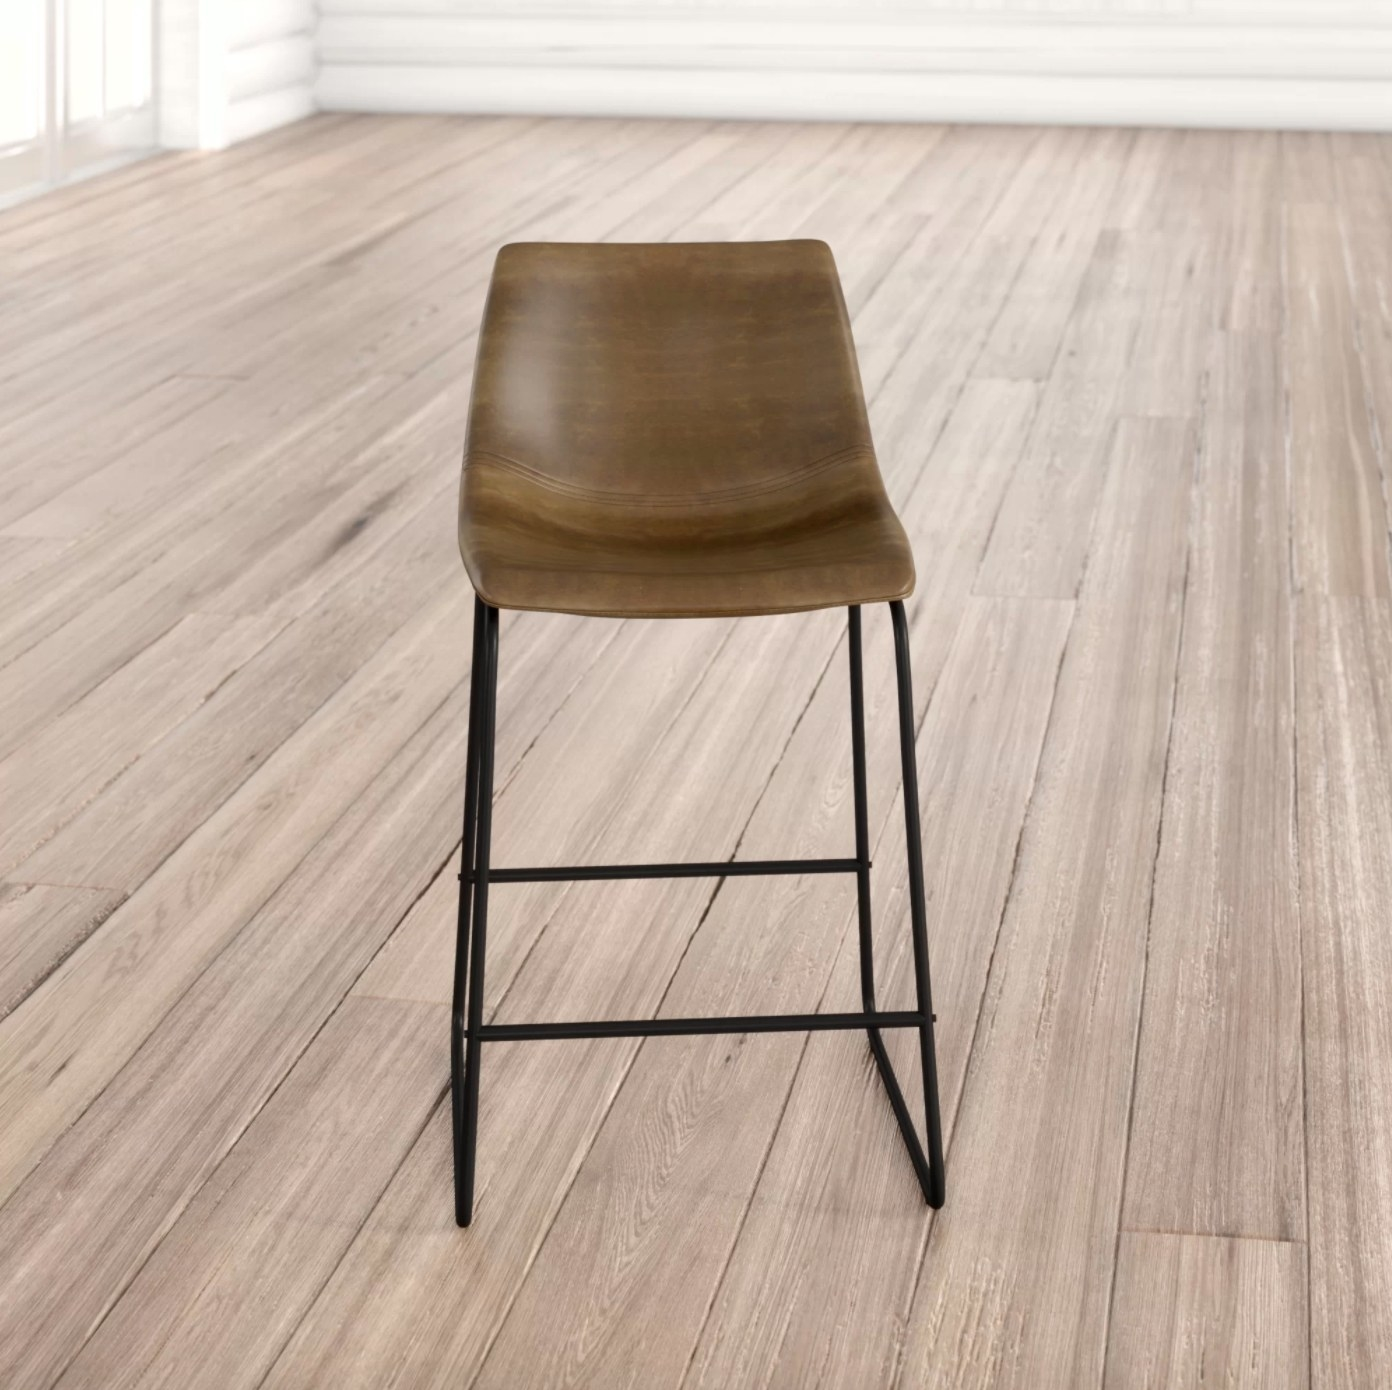 The set of bar and counter stools in brown